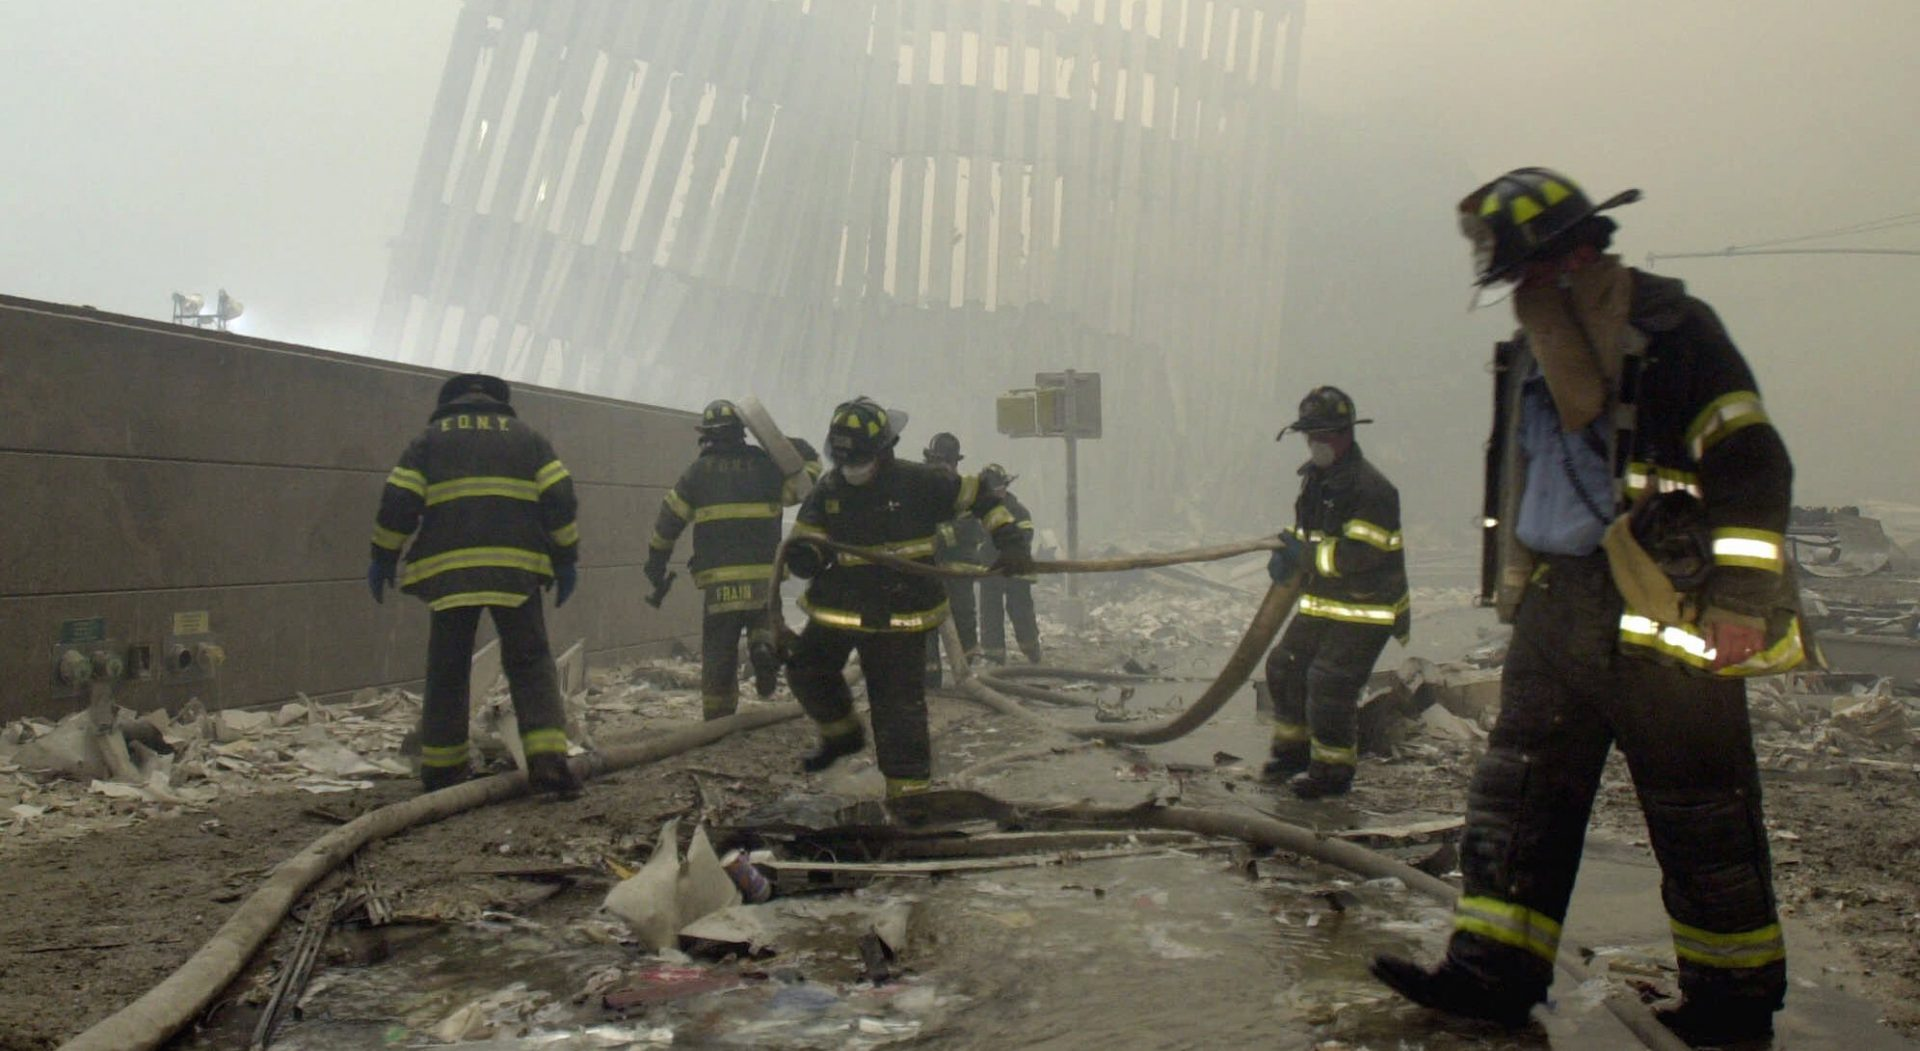 In this Sept. 11, 2001 file photo, with the skeleton of the World Trade Center twin towers in the background, New York City firefighters work amid debris on Cortlandt St. after the terrorist attacks.